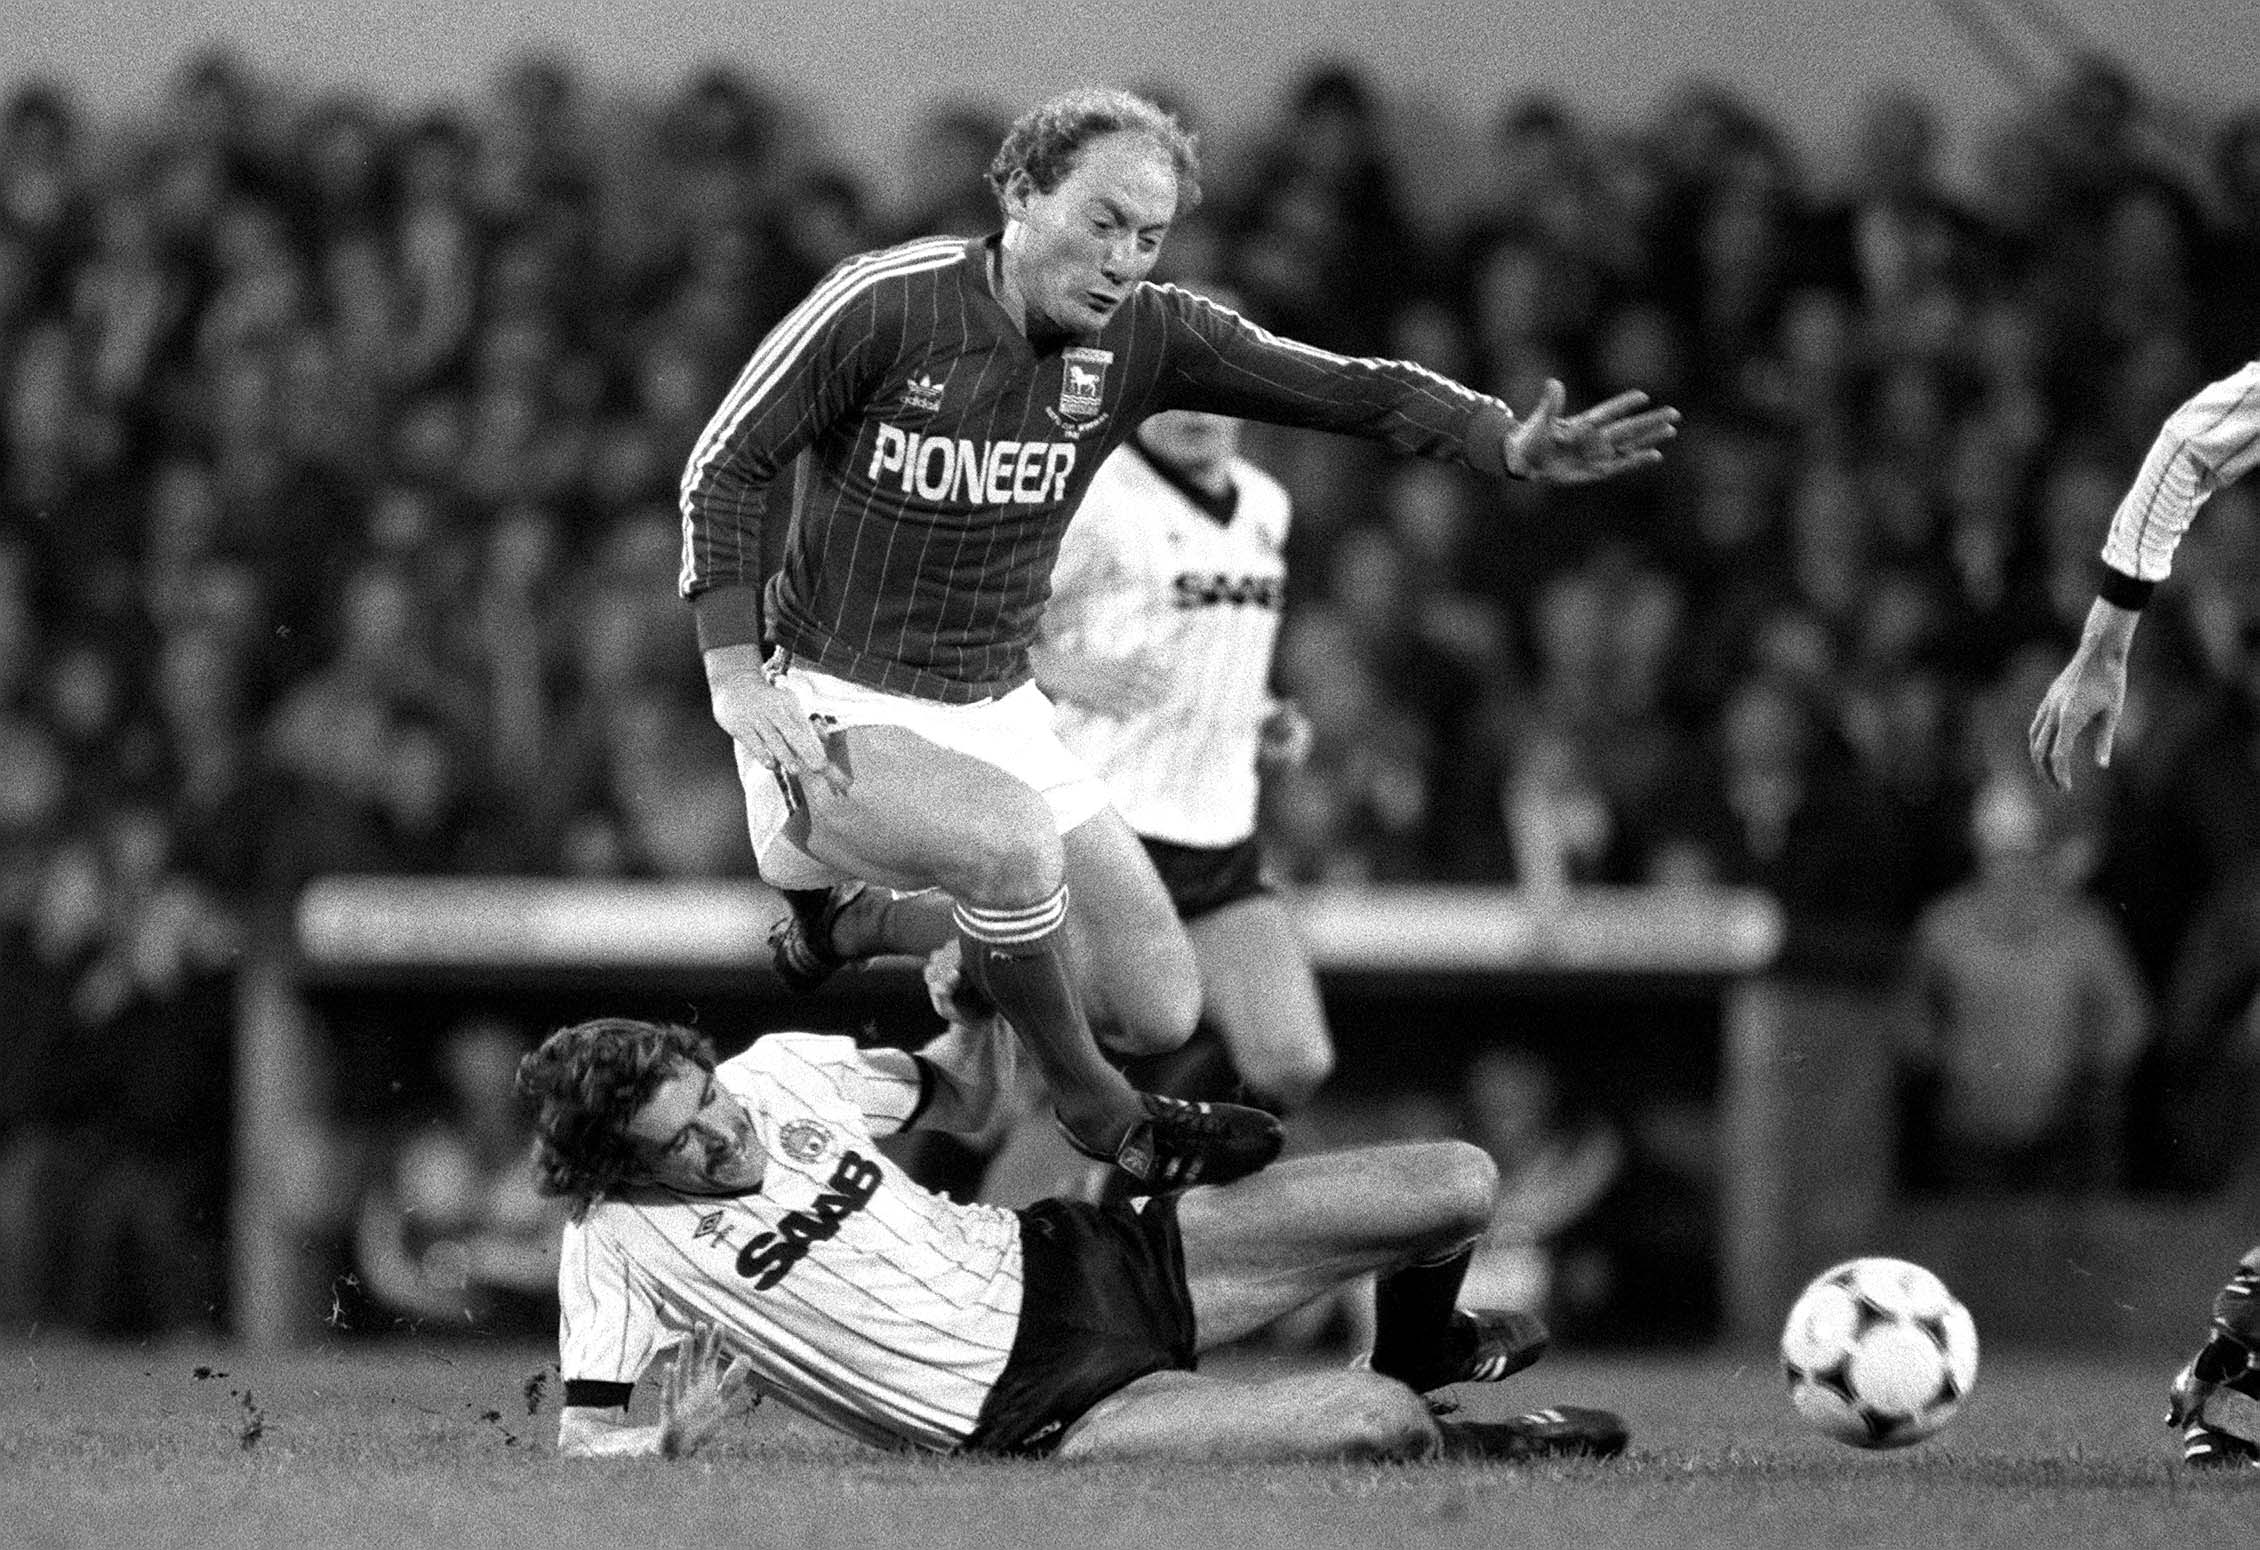 Alan Brazil feels the full force of this tackle by Manchester City's Paul Power in 1982. (Mark Leech/Getty Images)